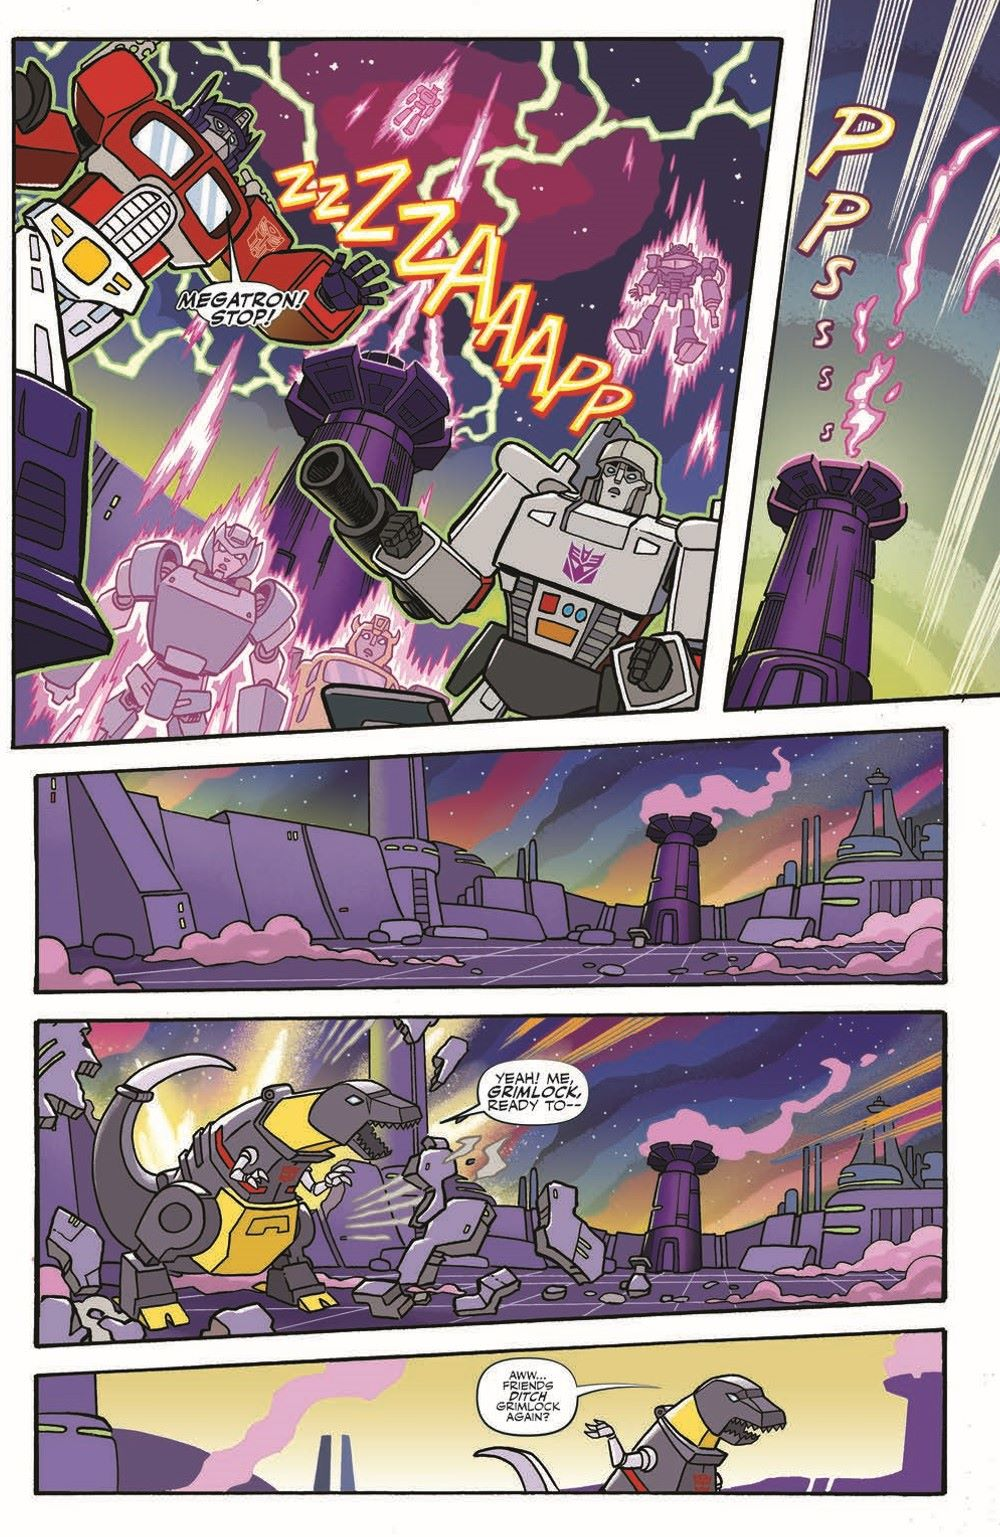 MLP-TF_XOVER_TPB_pr-6 ComicList Previews: MY LITTLE PONY TRANSFORMERS FRIENDSHIP IN DISGUISE TP